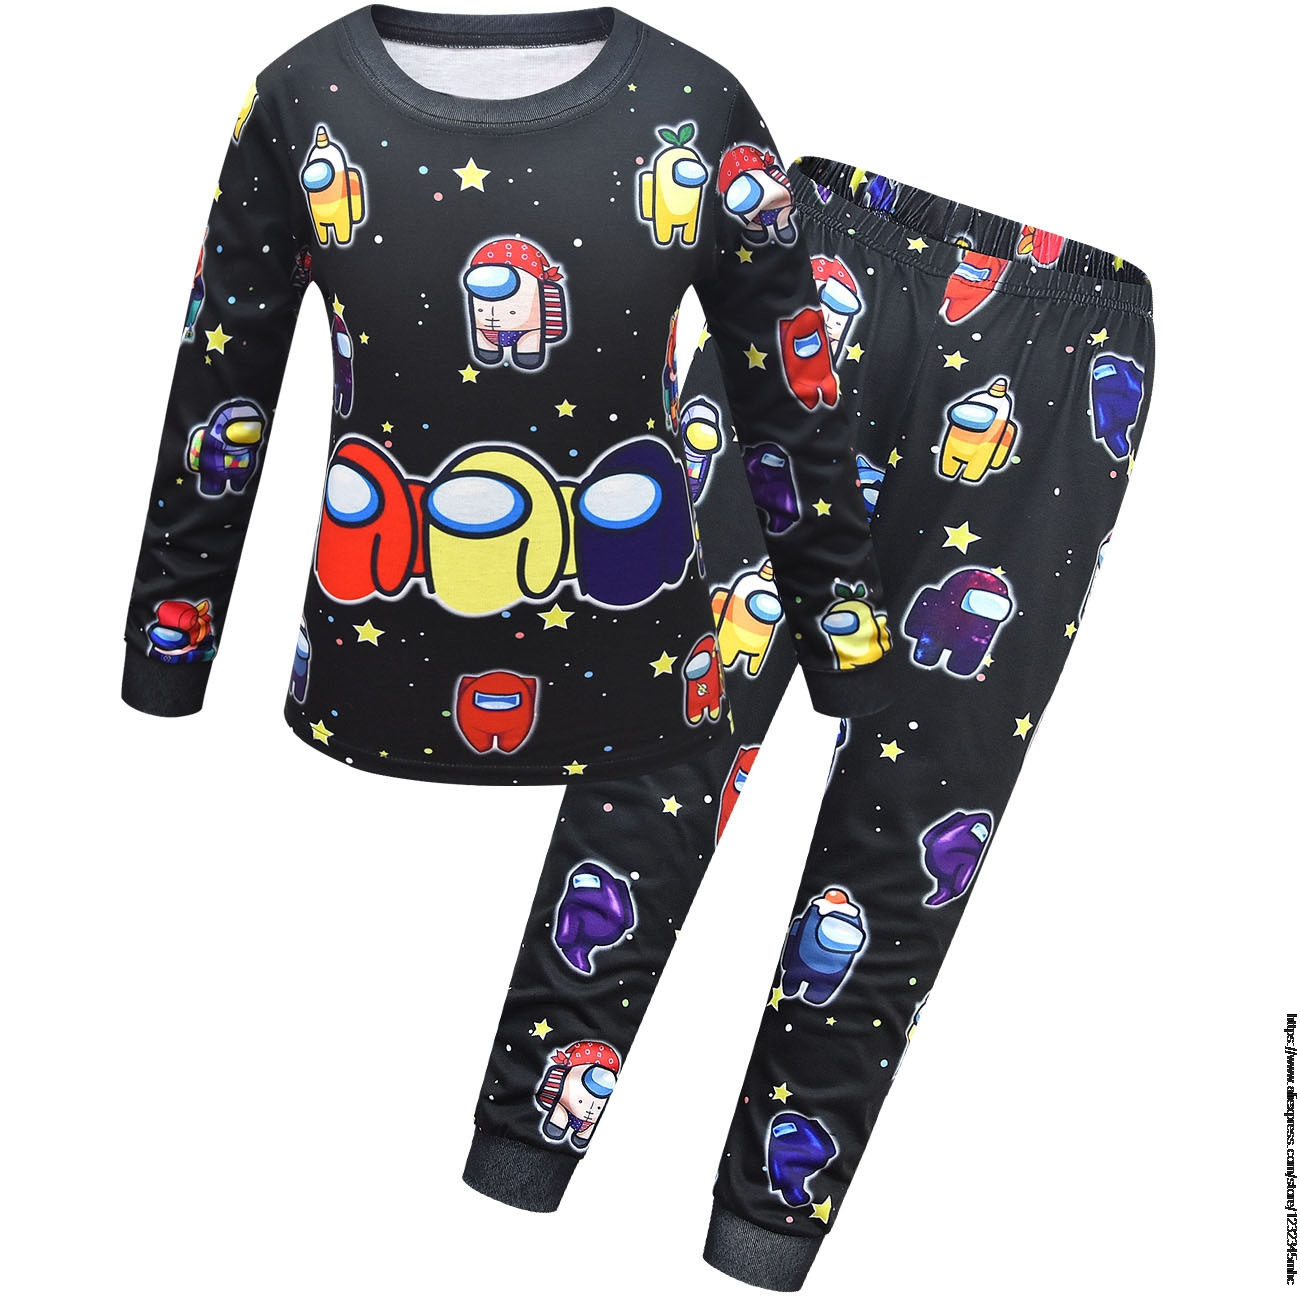 Game Among US 3-14 Years Boys and Girls Underwear Suits Teen Children's Autumn Clothes Suits Baby Boys' Home Wear Pajamas Set